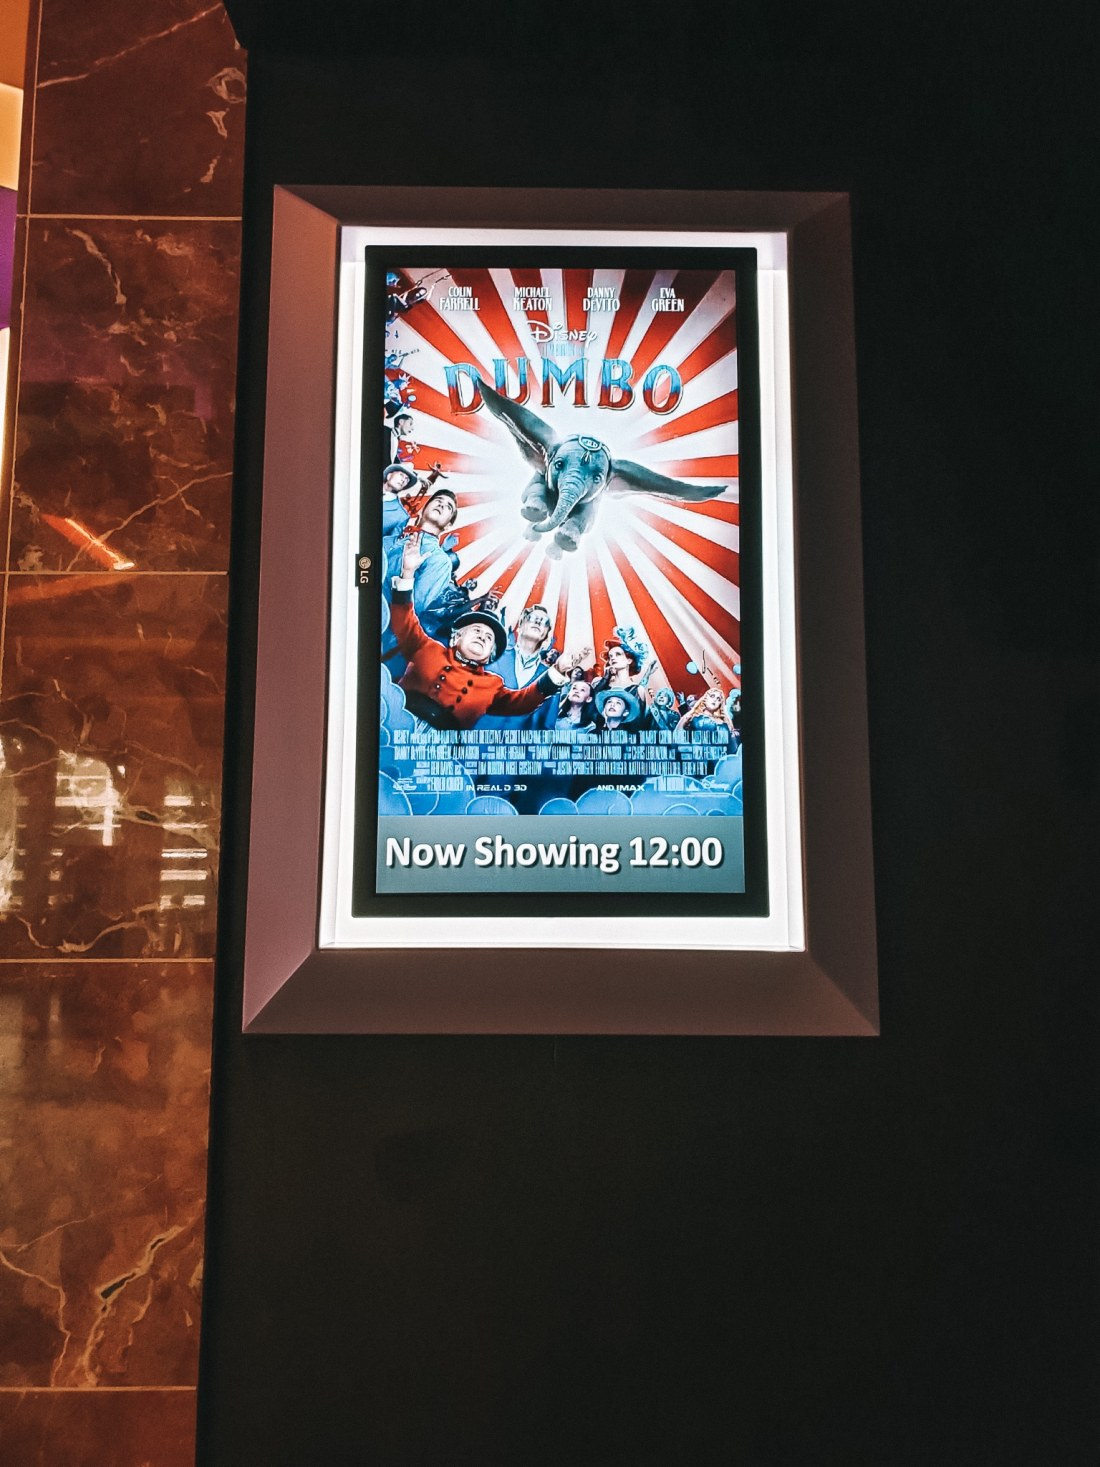 Dumbo Regal Cinema 4DX Experience Showtime. Dumbo flies into theaters on March 29, 2019.